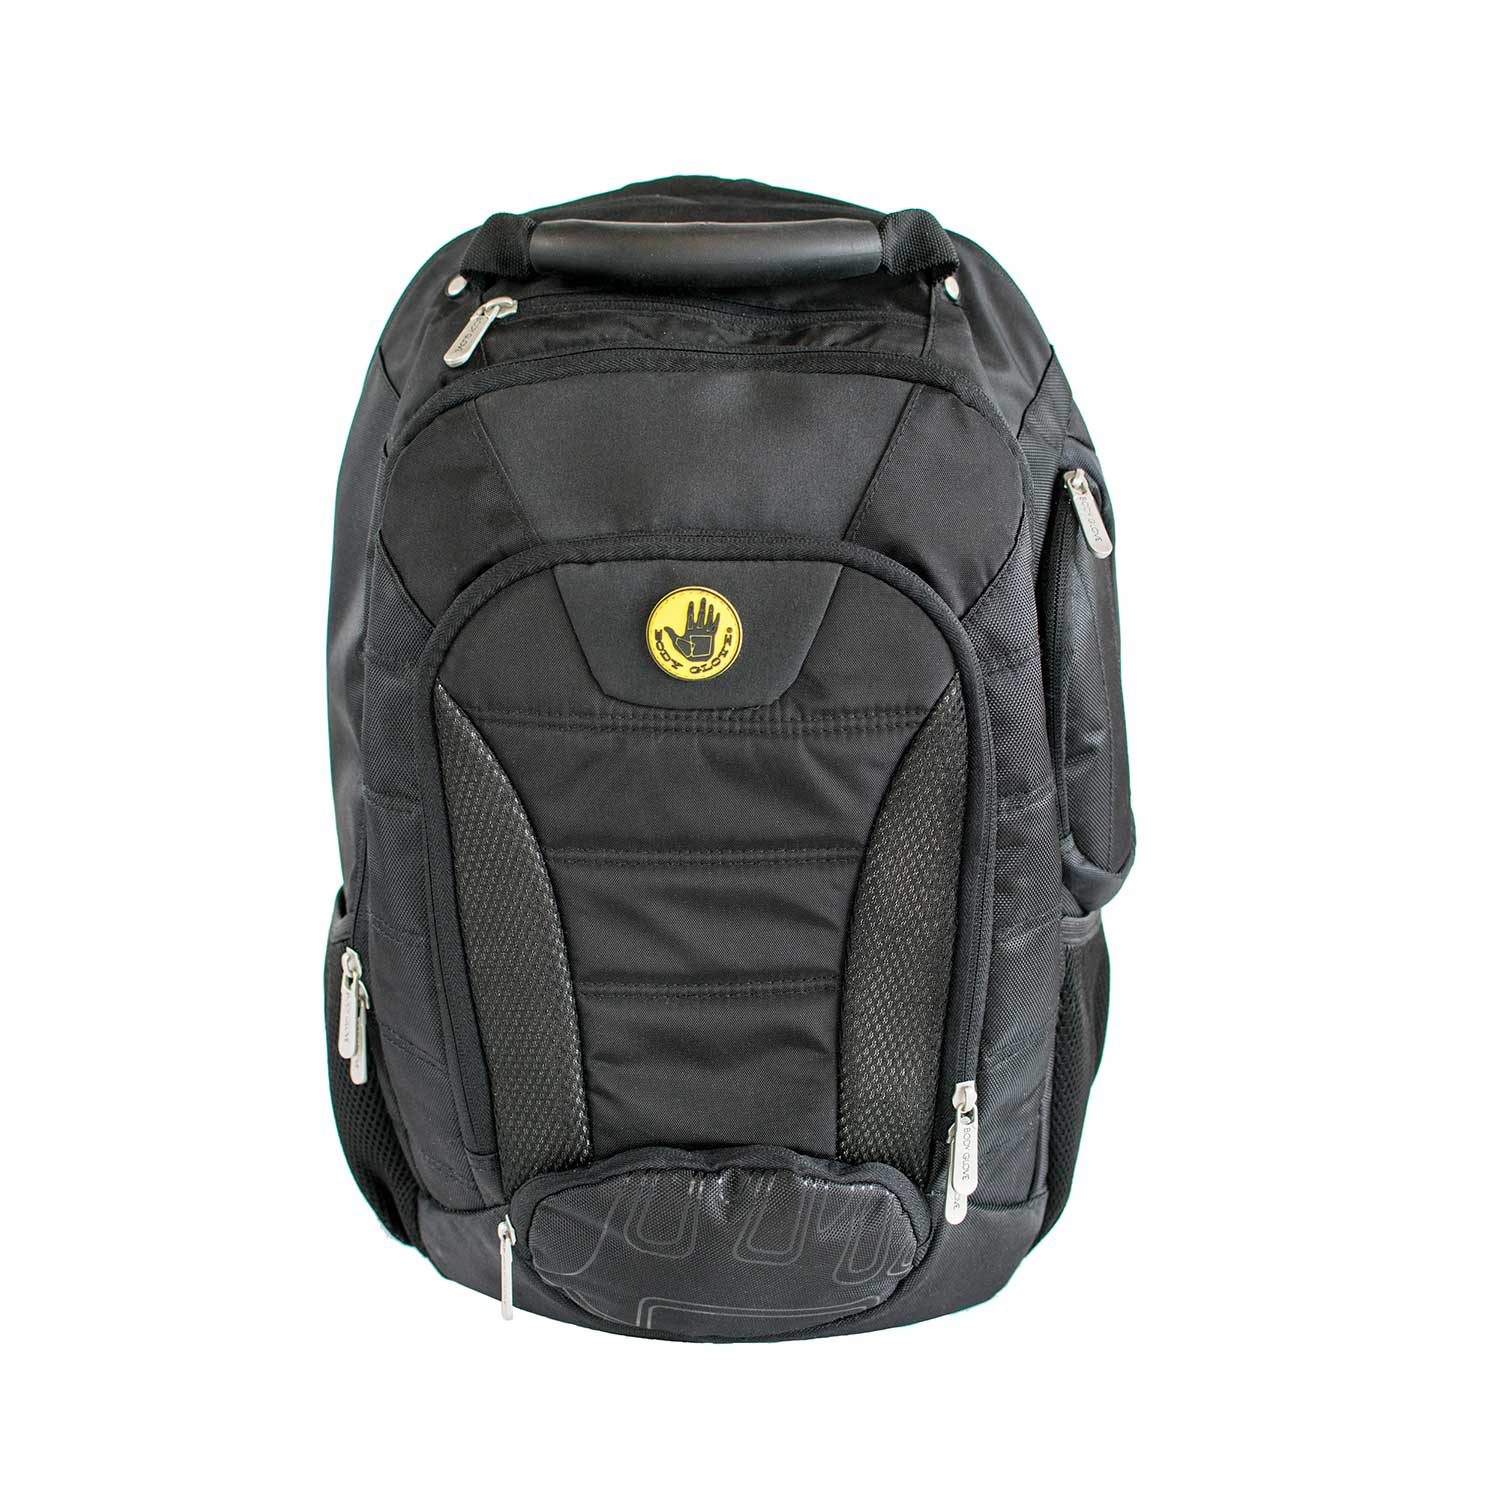 "Body Glove Ricon Laptop Backpack 15.6"", Accessories, Body Glove, BaRRiL - BaRRiL"